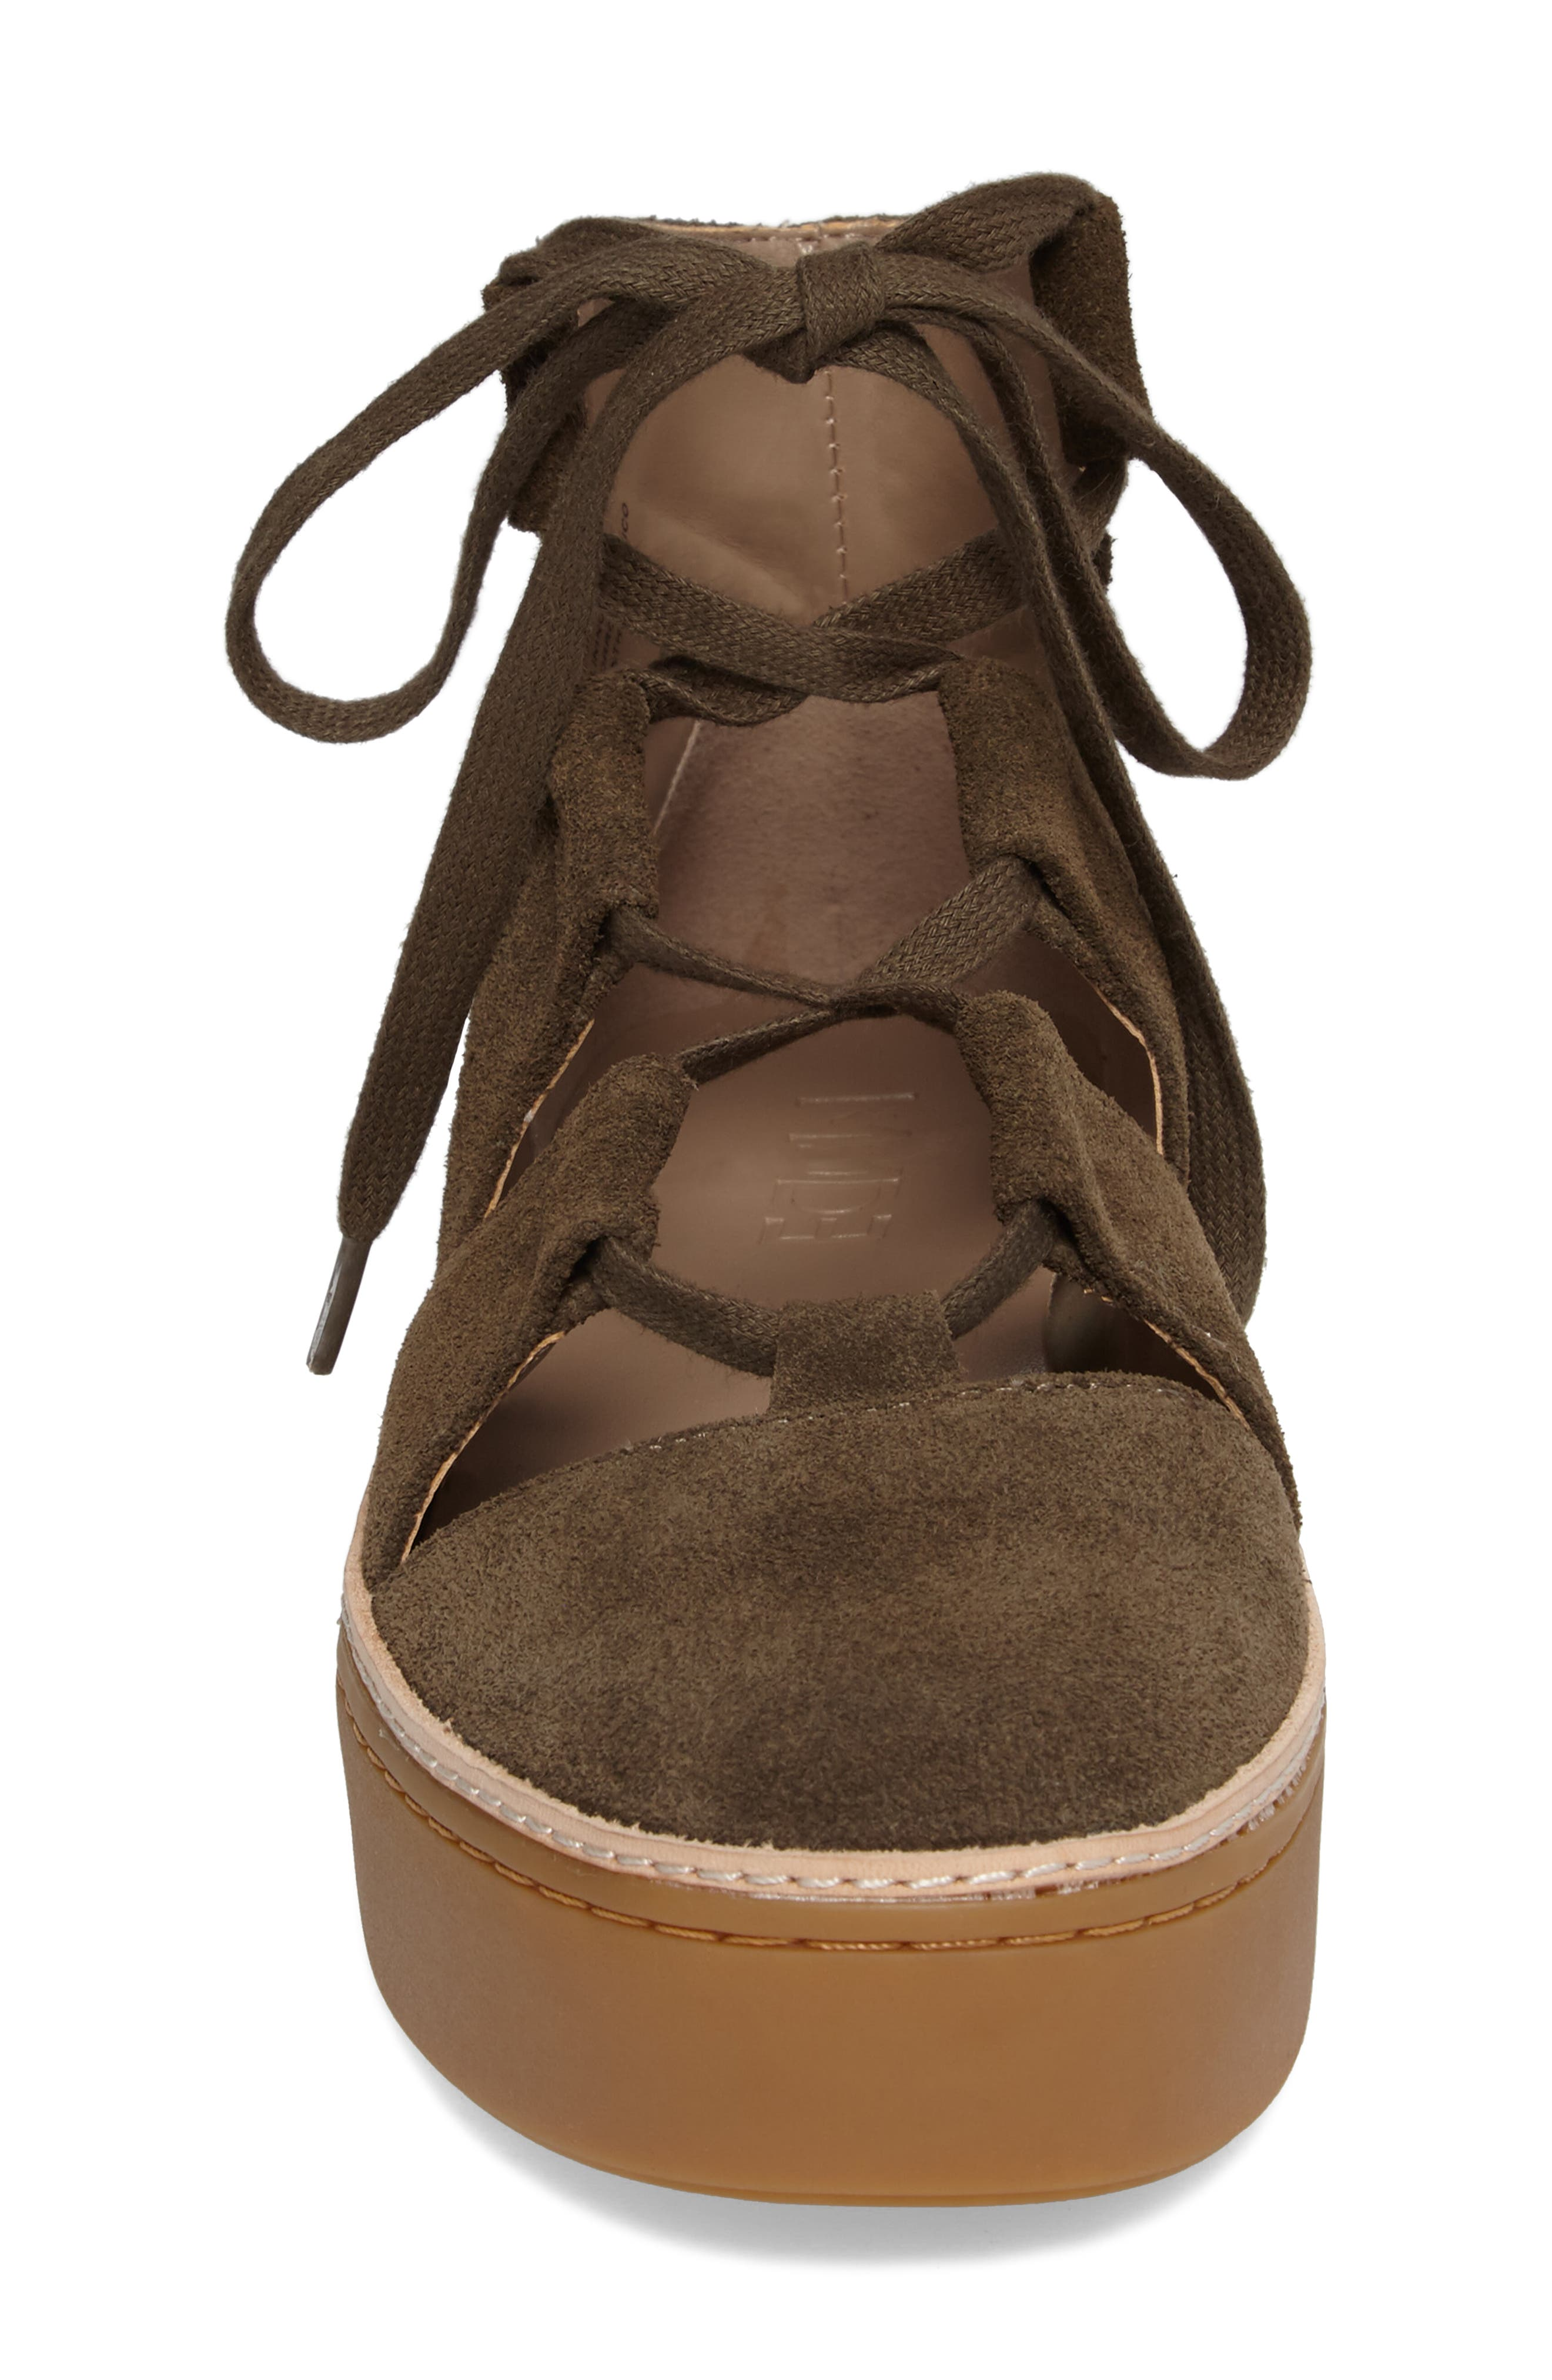 M4D3 Savanah Ghillie Platform Sneaker,                             Alternate thumbnail 4, color,                             DEEP TAUPE LEATHER